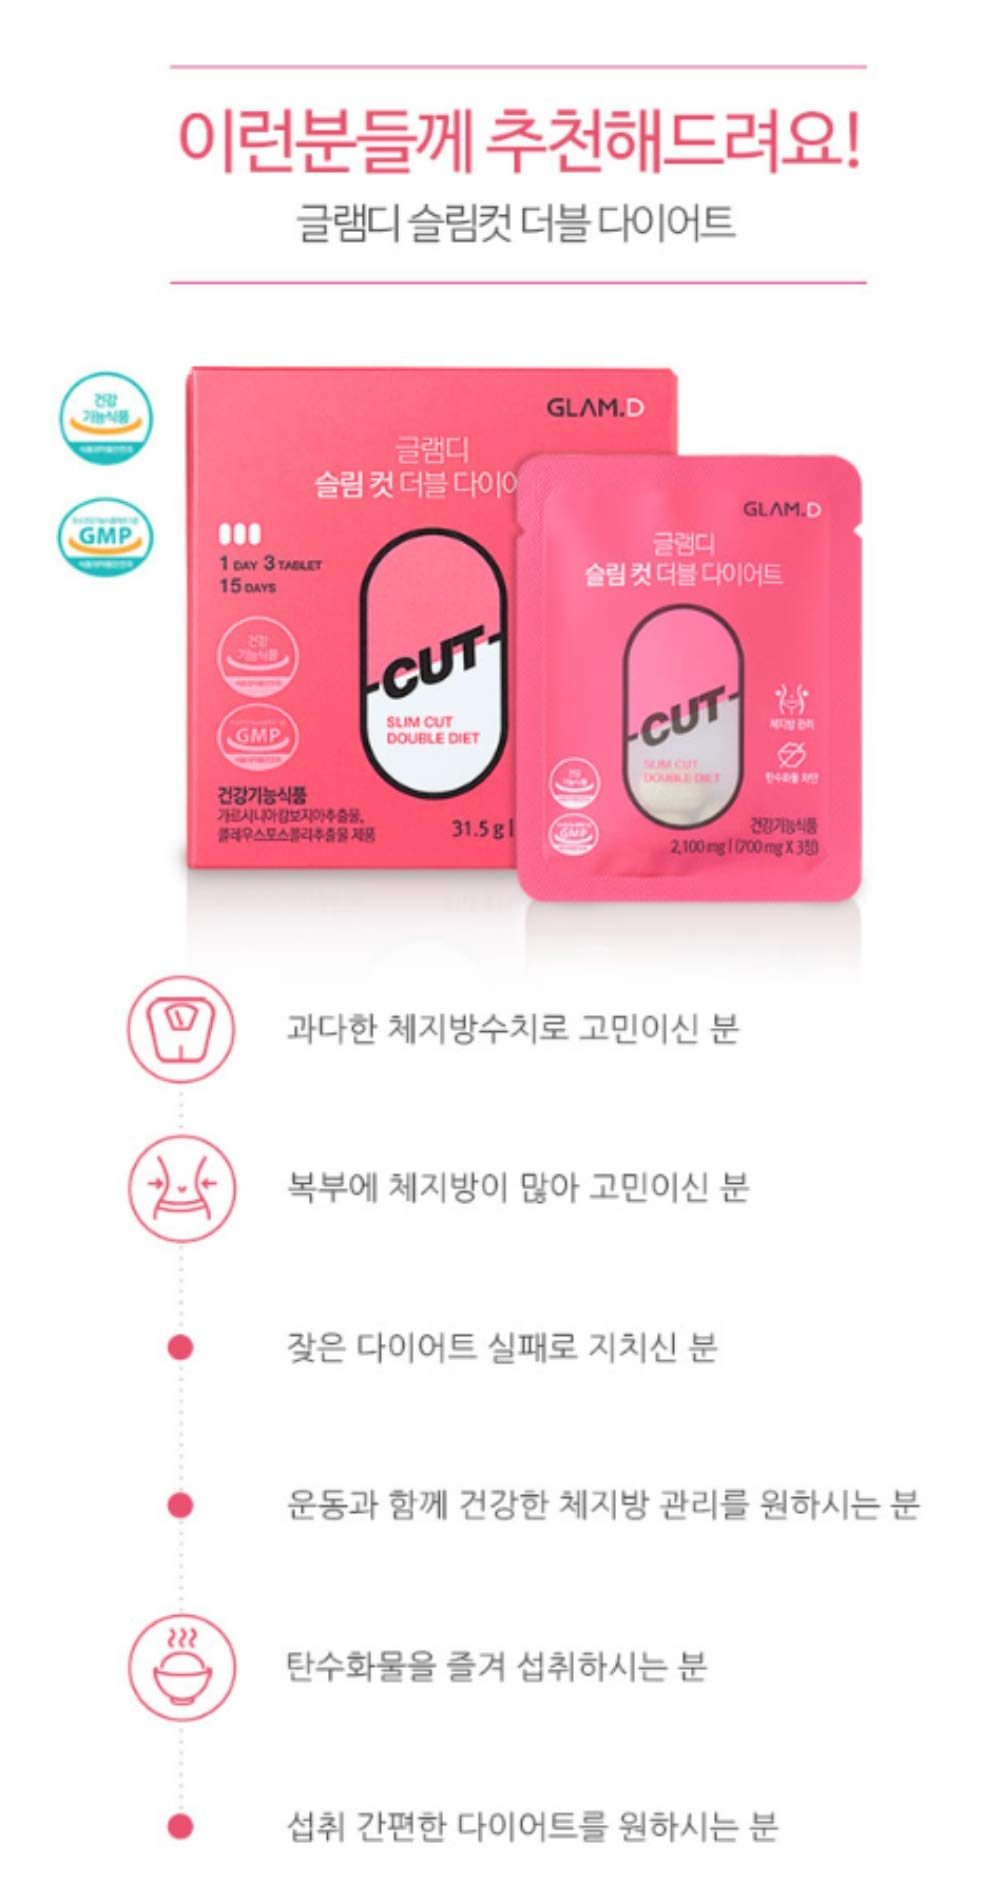 GLAM.D Slim Cut Double Diet 700mg X 45capsule (31.5g) Made in Korea Weight Loss, Health by GLAM.D (Image #5)